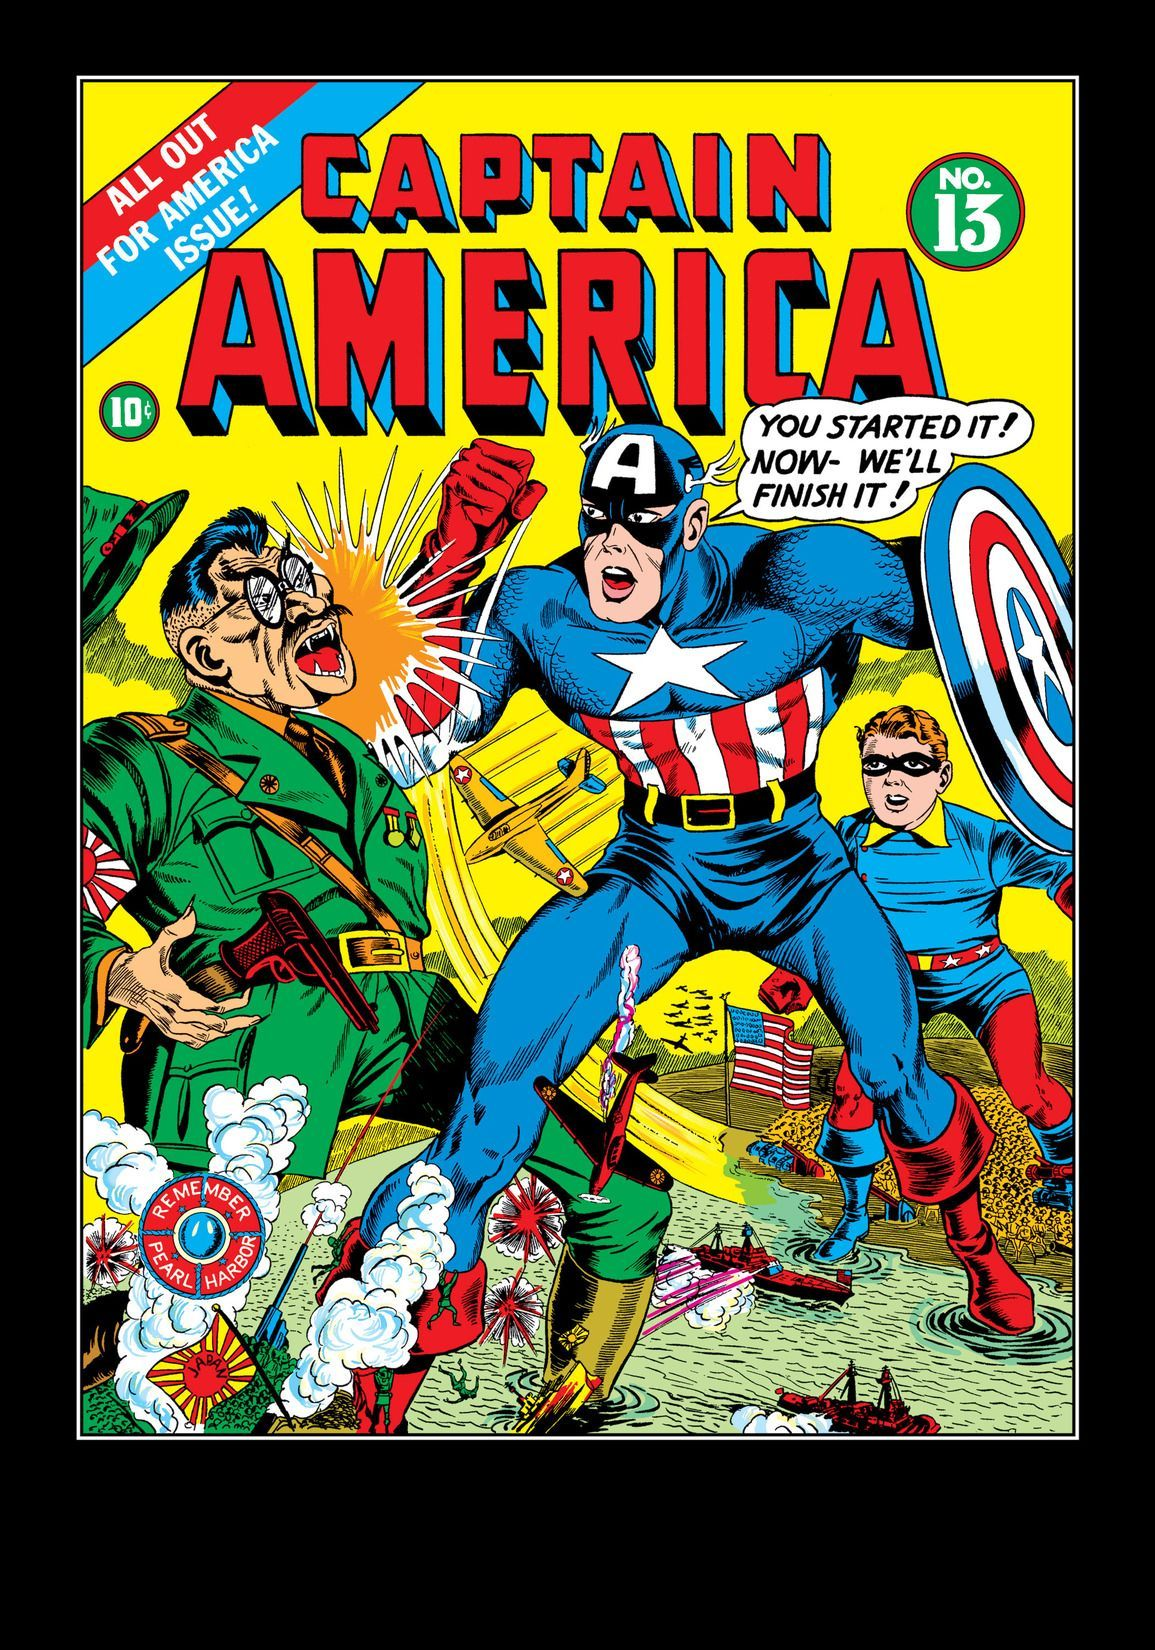 Captain America Comics 1941 1950 13 Comics By Comixology Captain America Comic Captain America Comic Books Old Comics